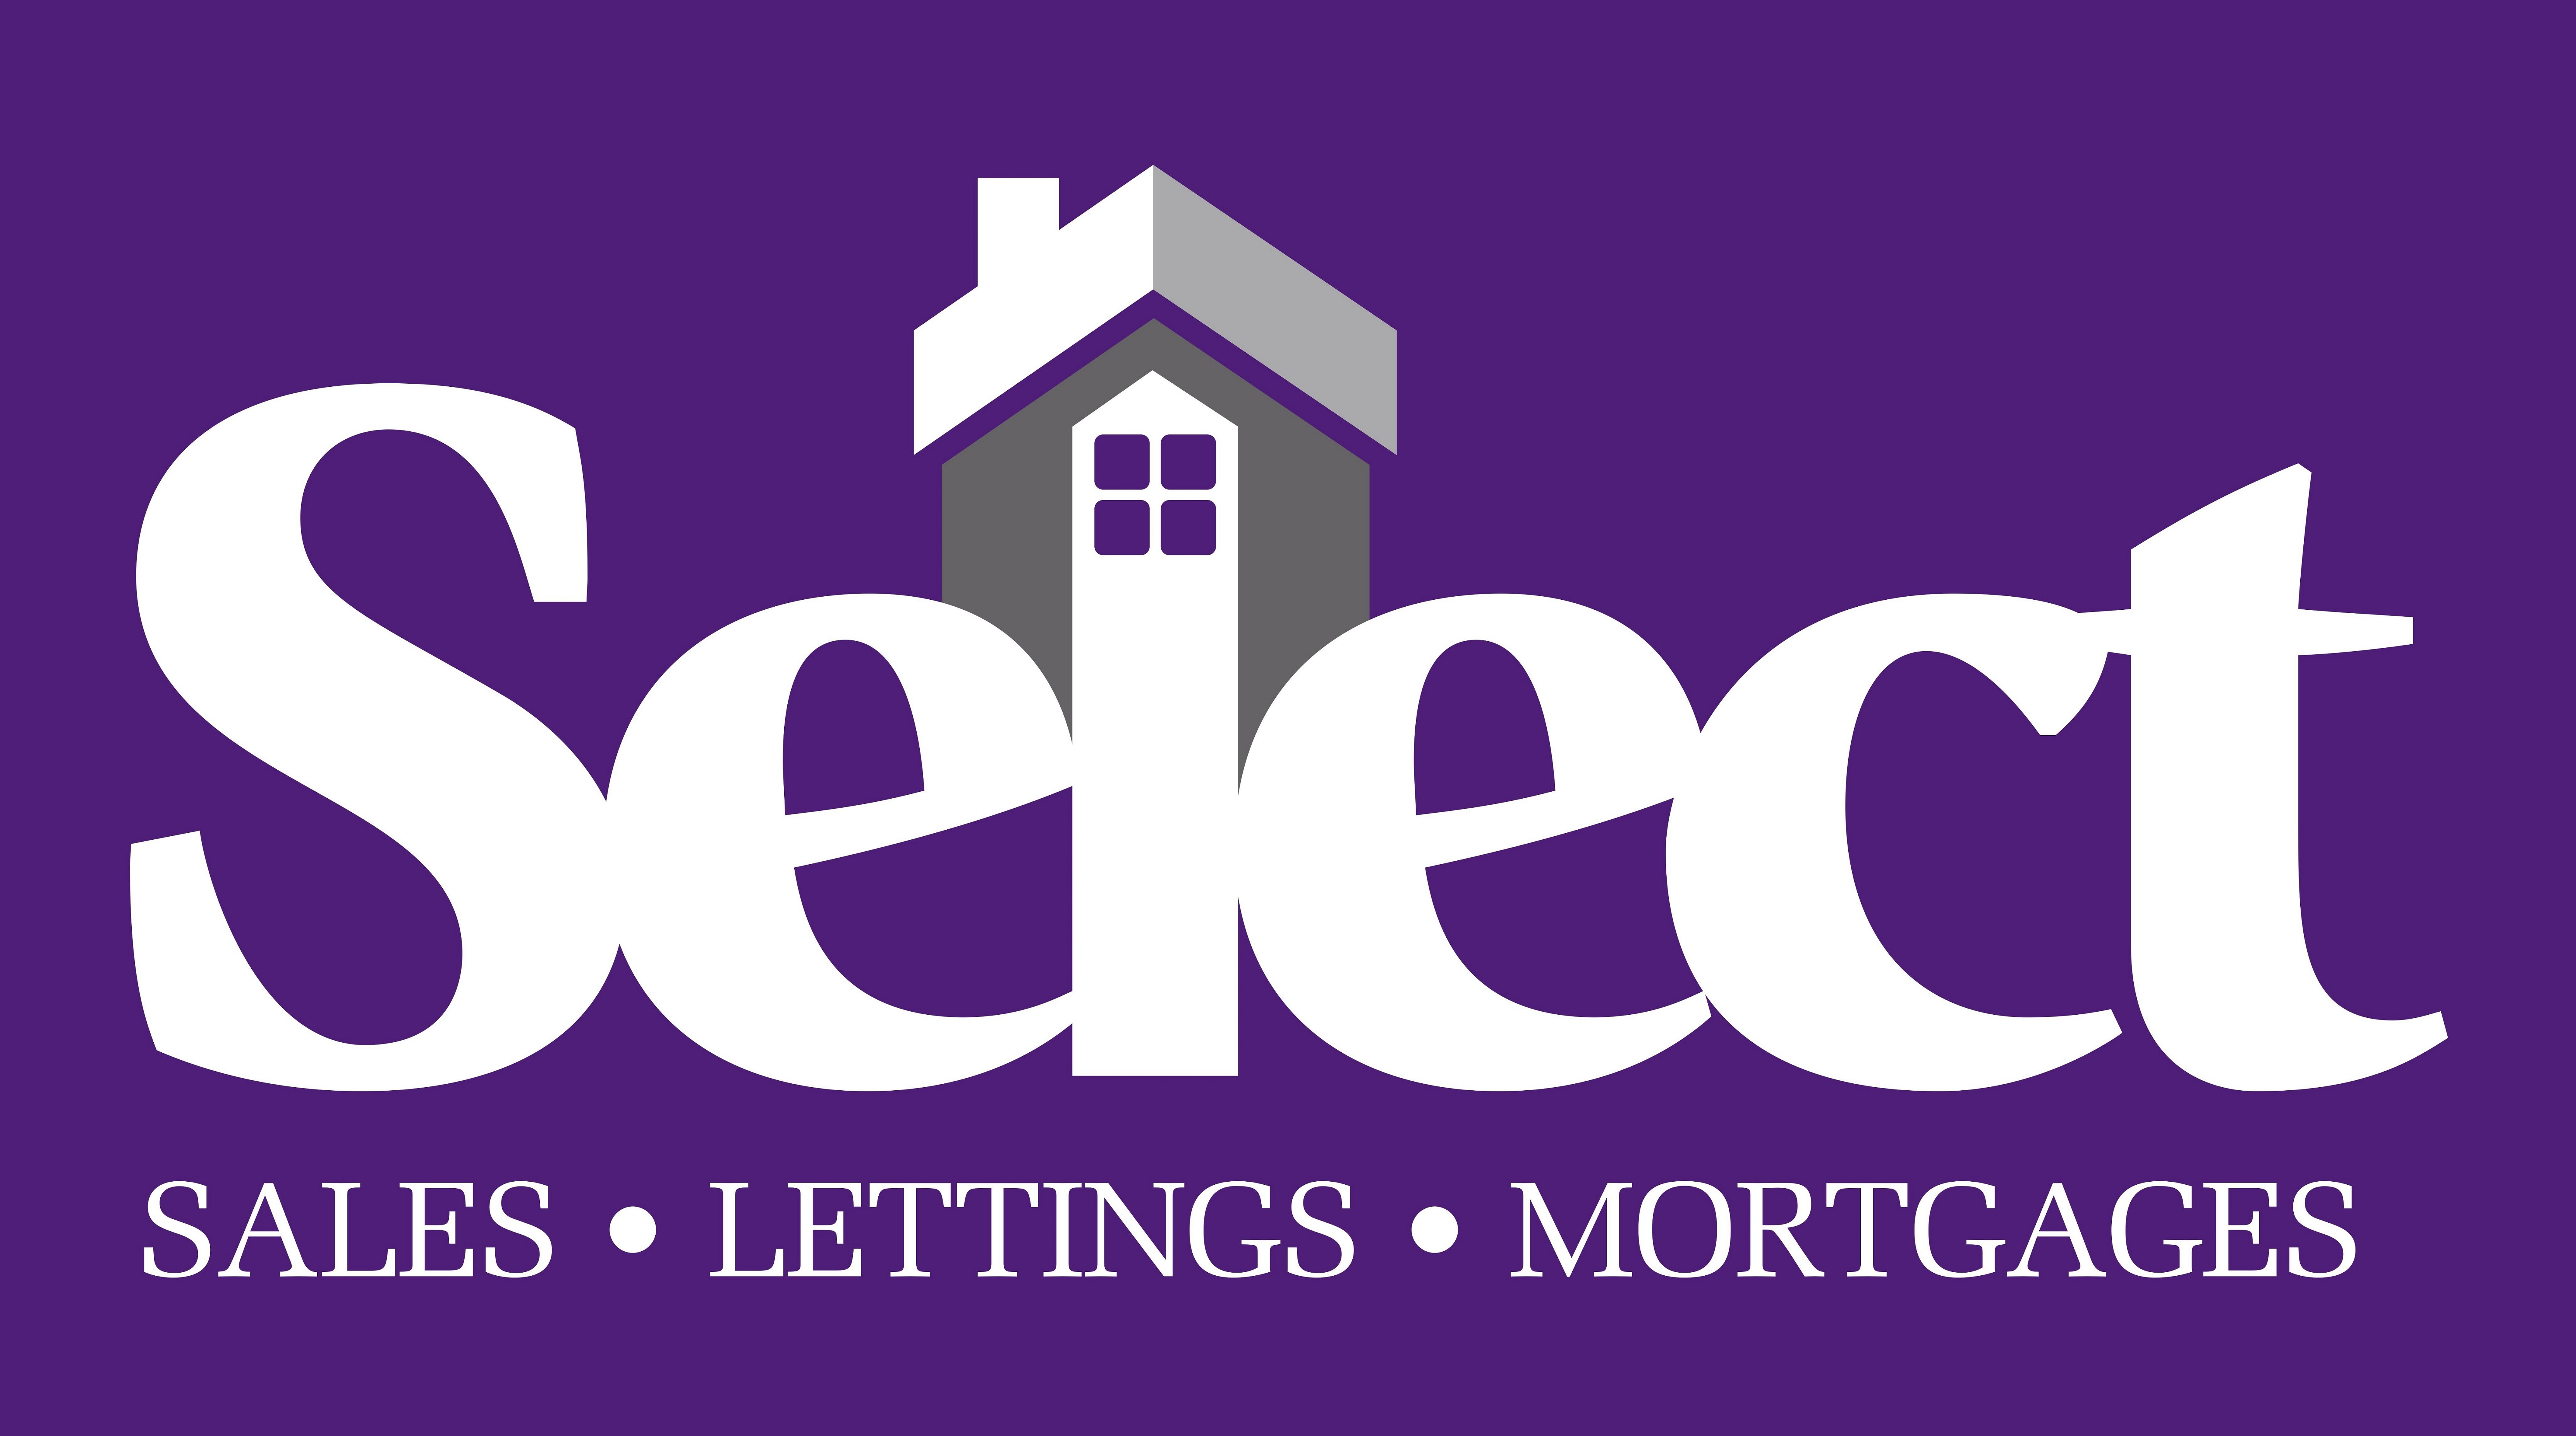 Select Estate and Lettings Agency